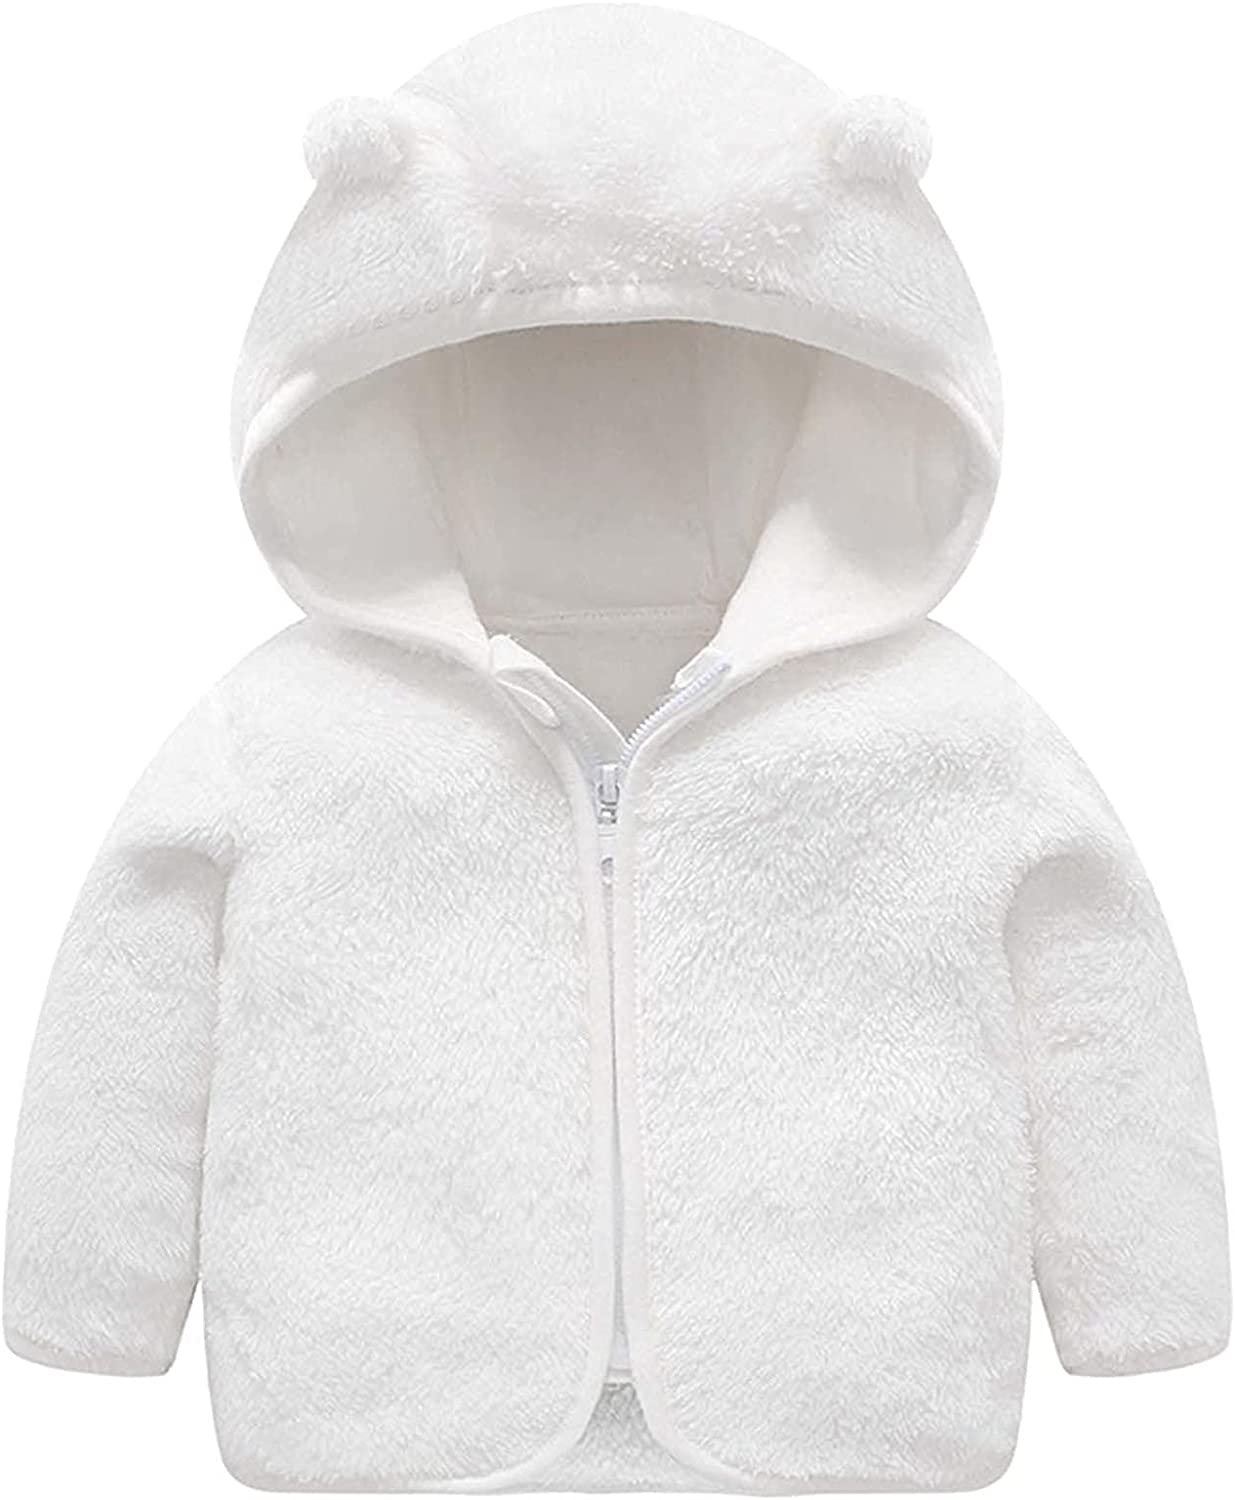 Baby Infant Girls Boys outlet Autumn Winter NEW Coat Hooded Cloak Jacket Th